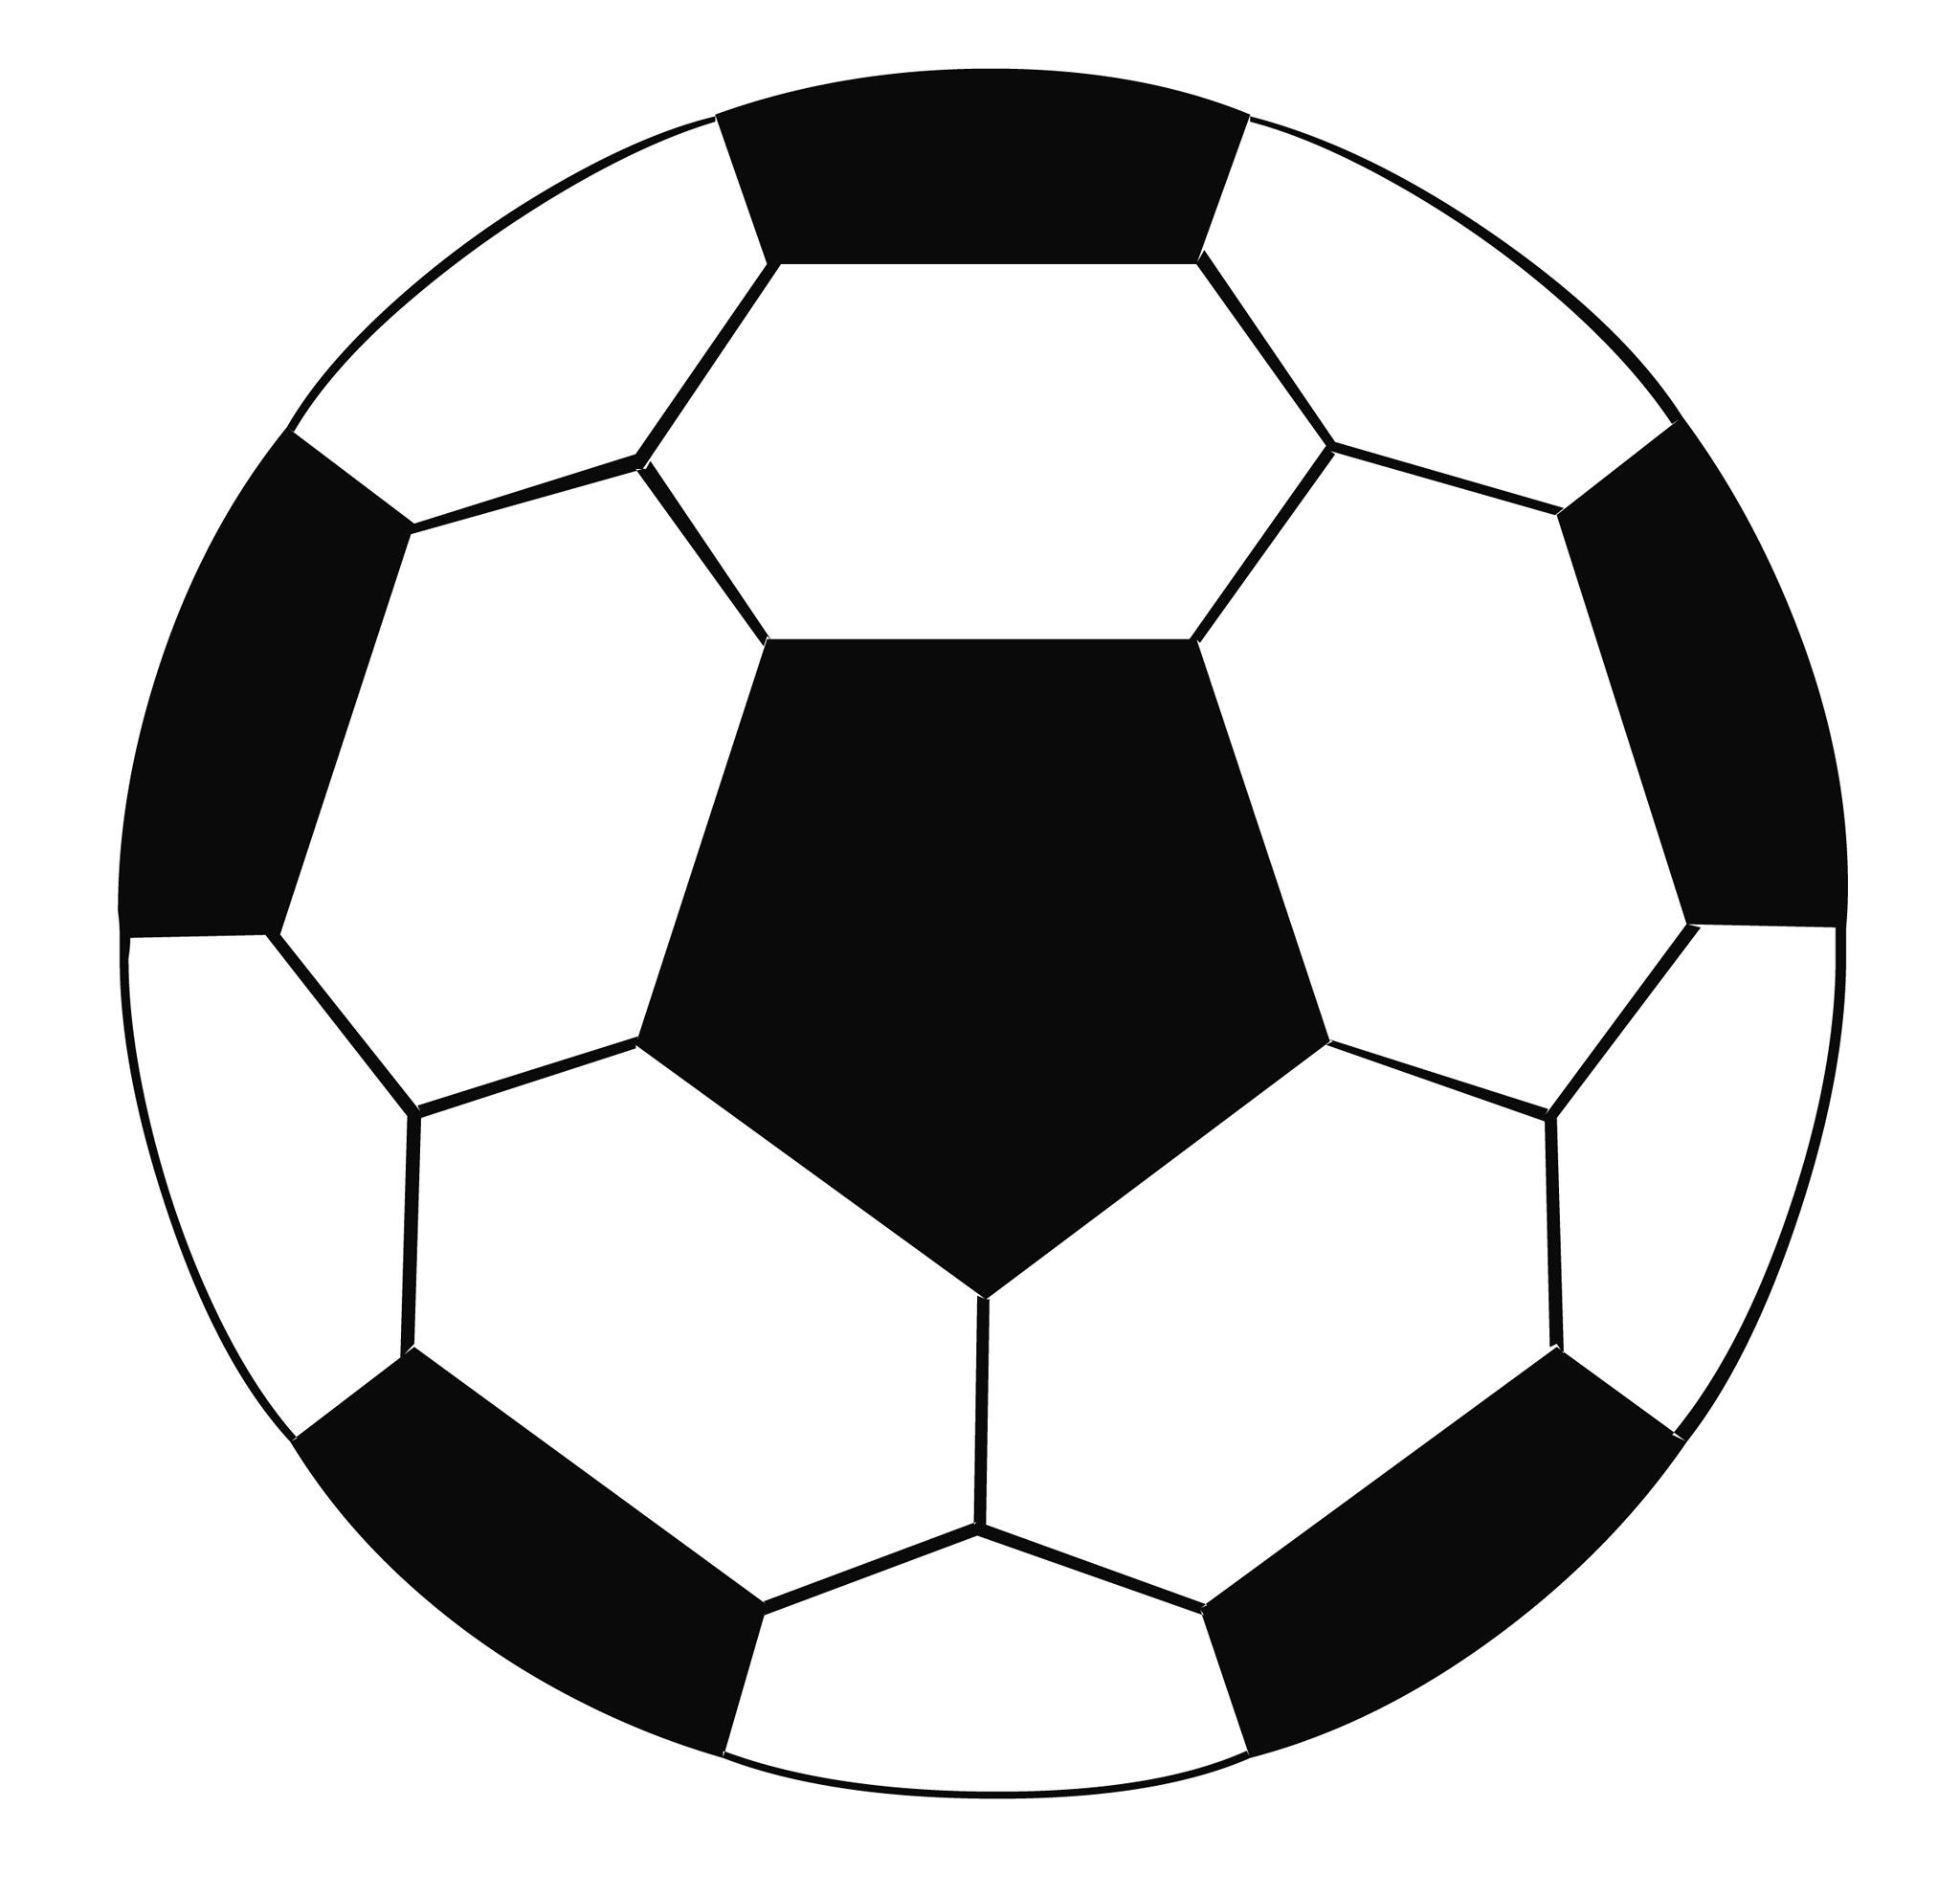 soccer ball clip art free large images recipe ideas pinte rh pinterest com soccer ball clipart transparent soccer ball clipart black and white